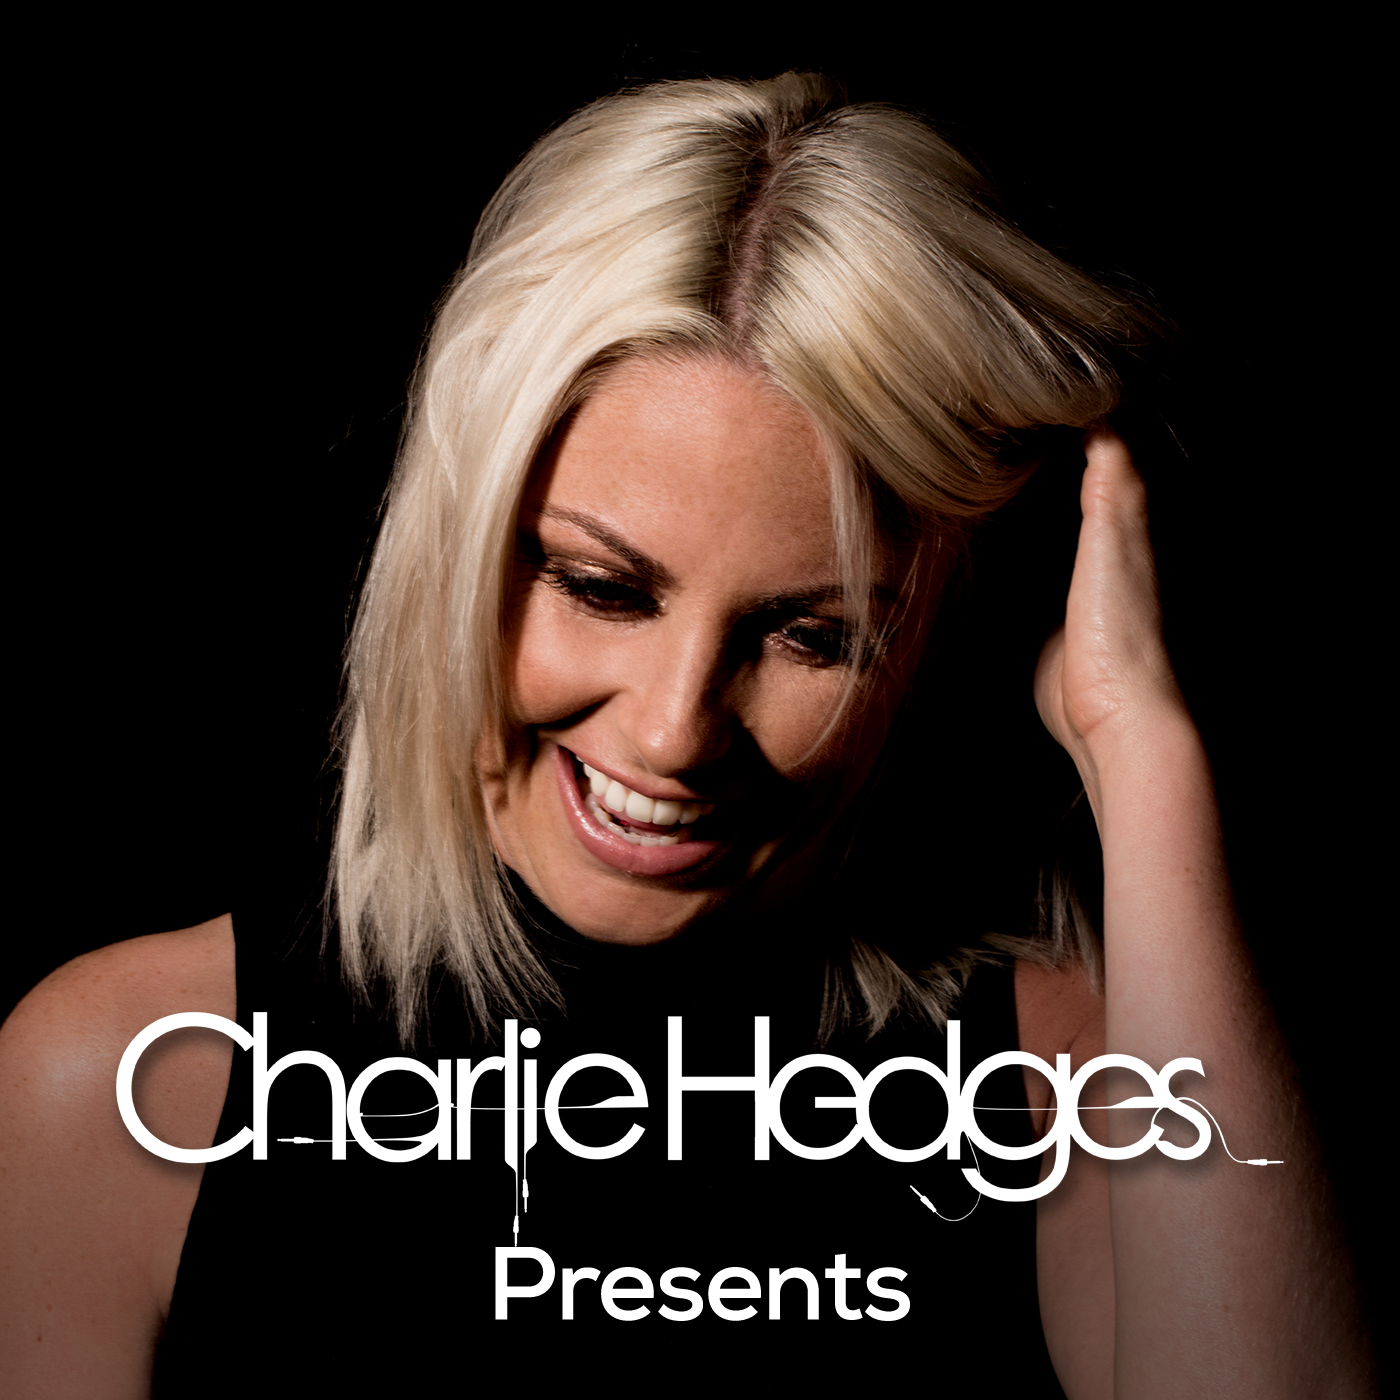 Charlie Hedges Presents